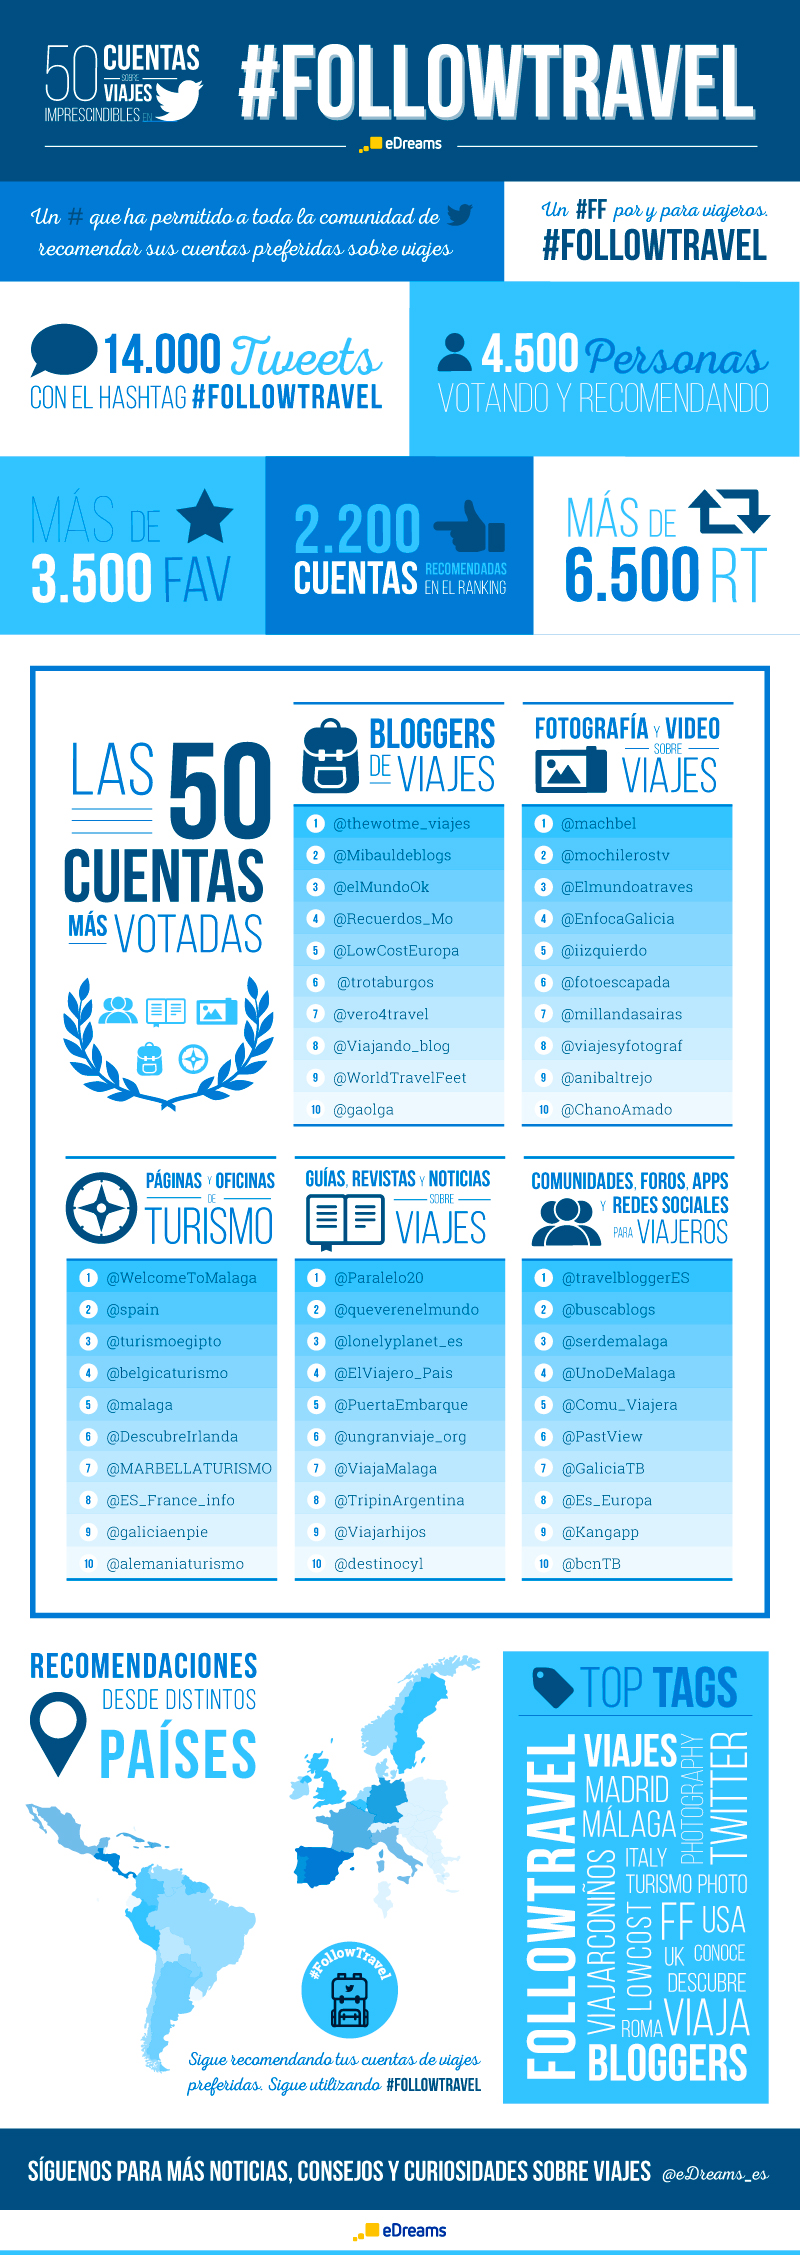 Infografía #FollowTravel Twitter de Edreams